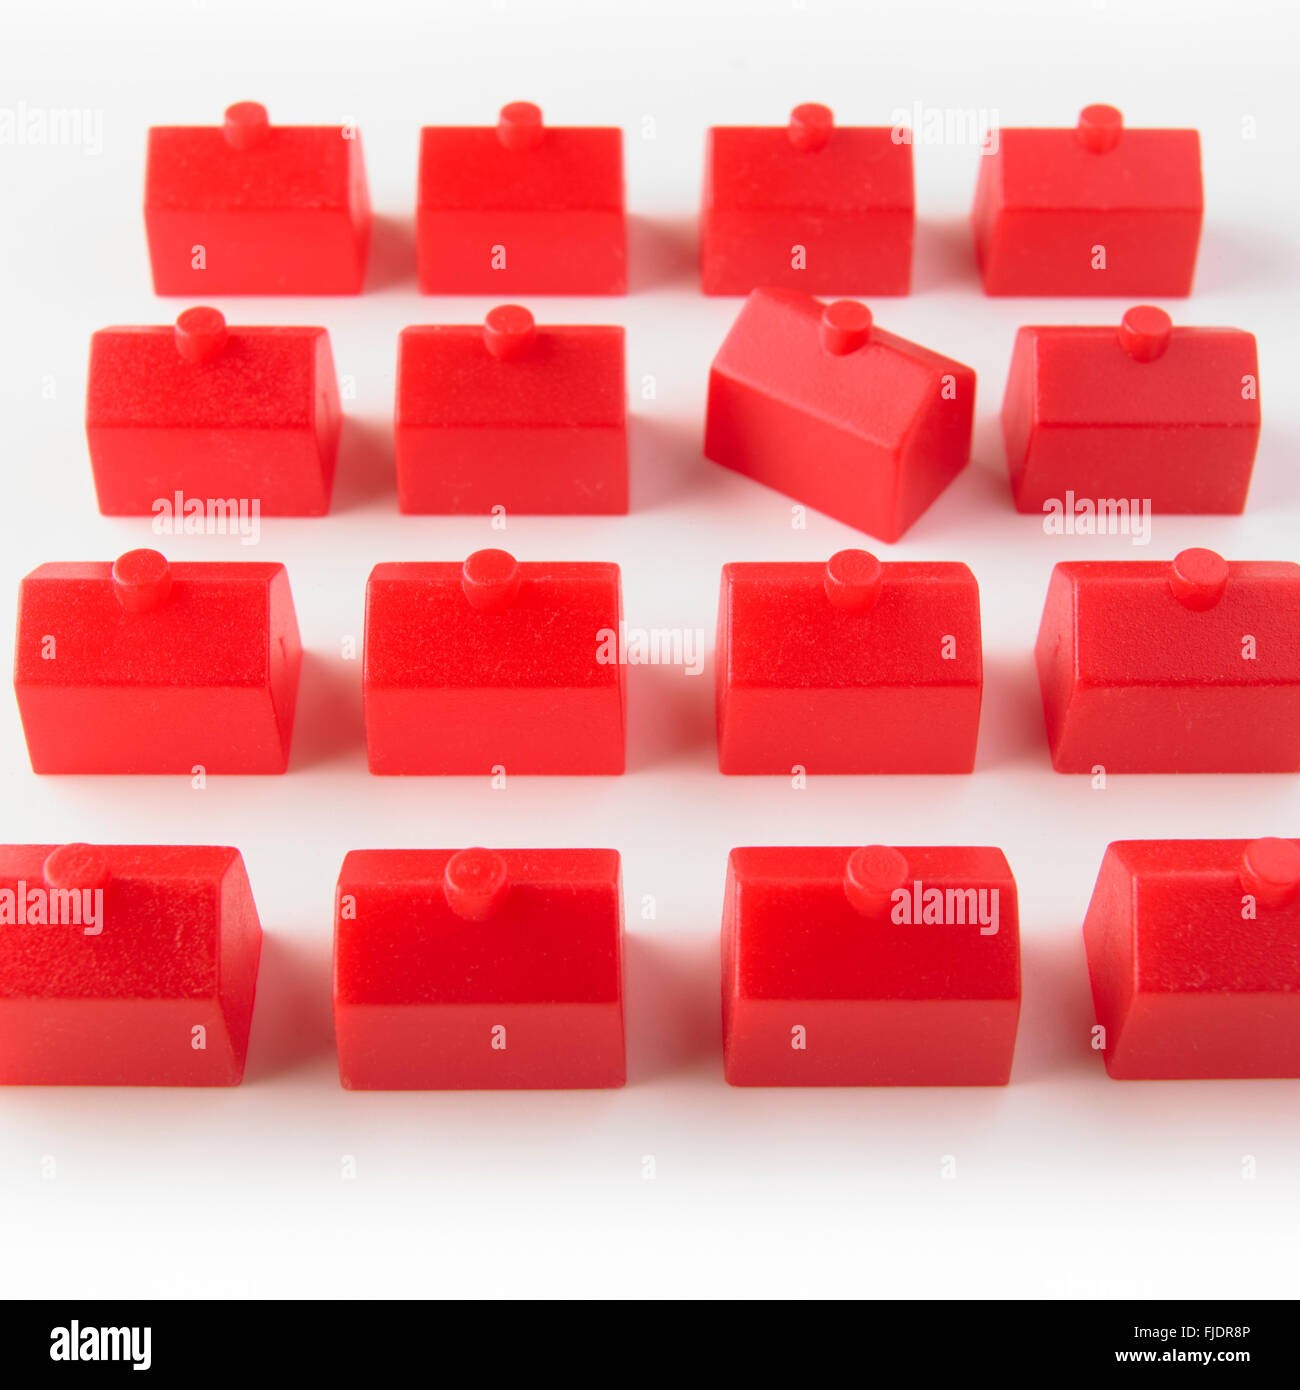 Identical red houses, one house angled - Stock Image